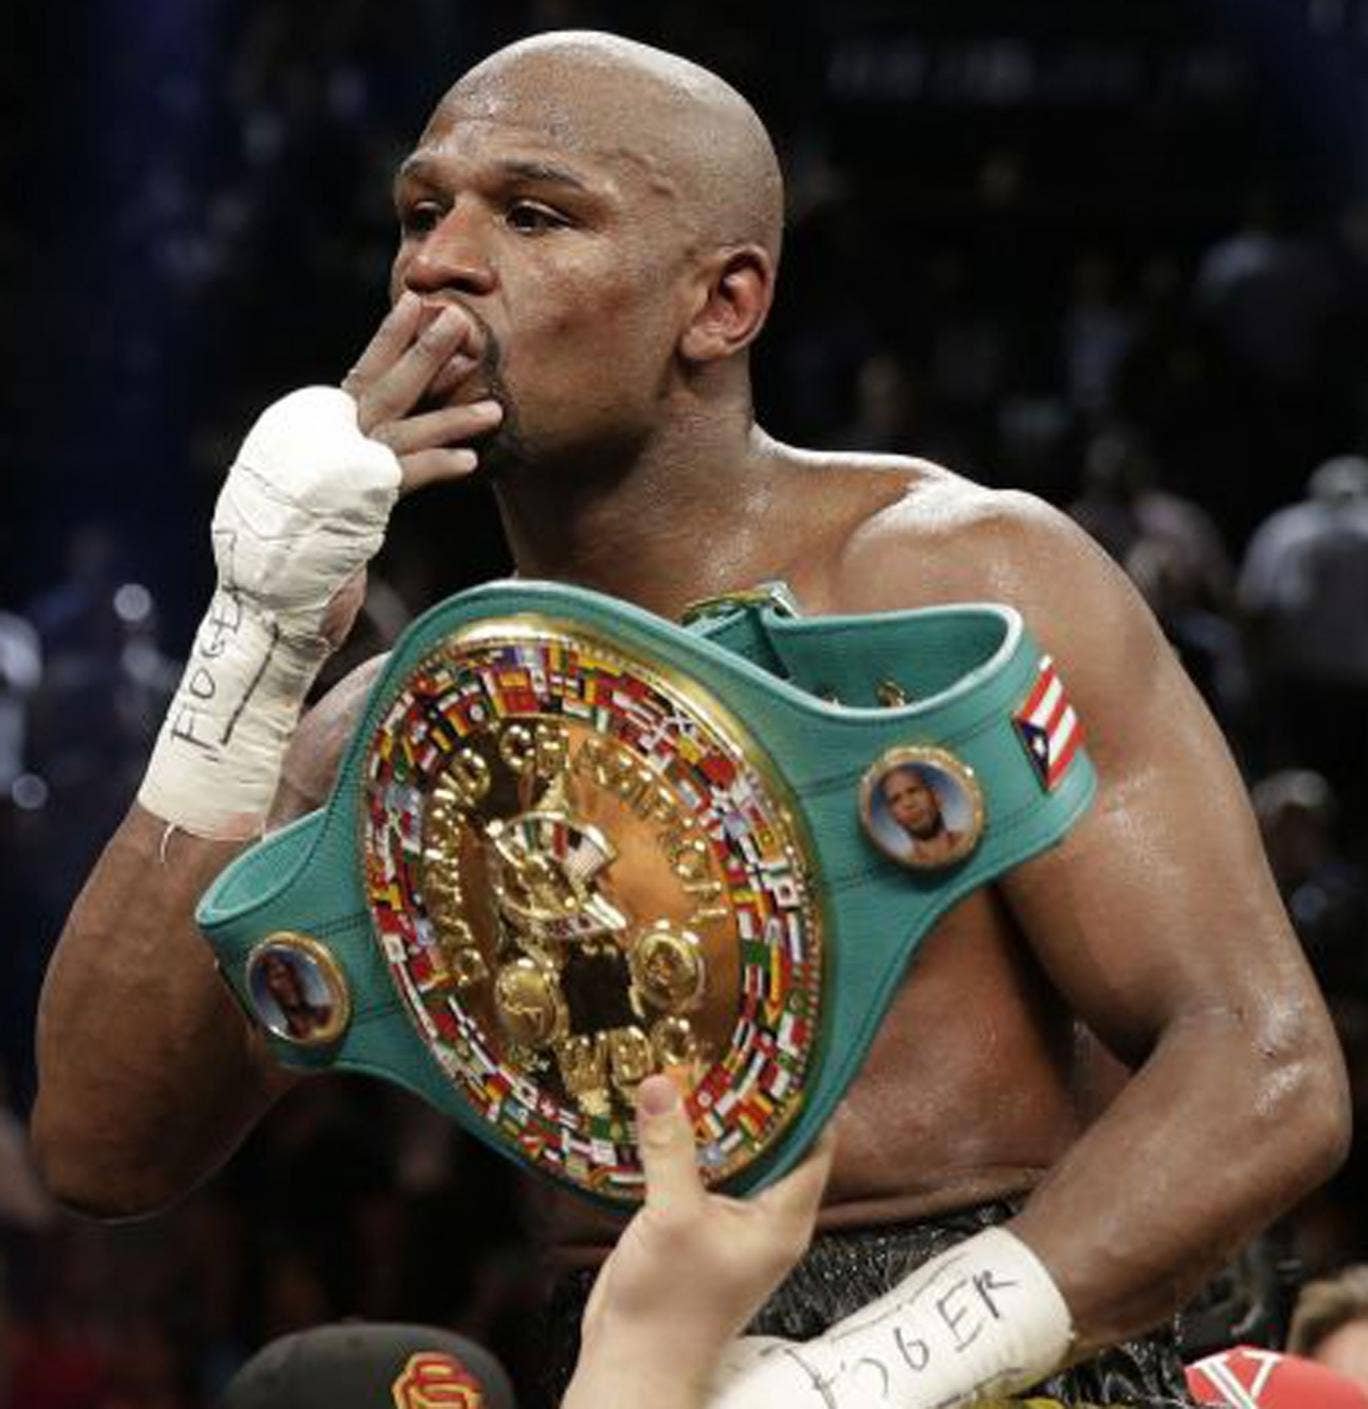 Floyd Mayweather celebrates another victory on Saturday